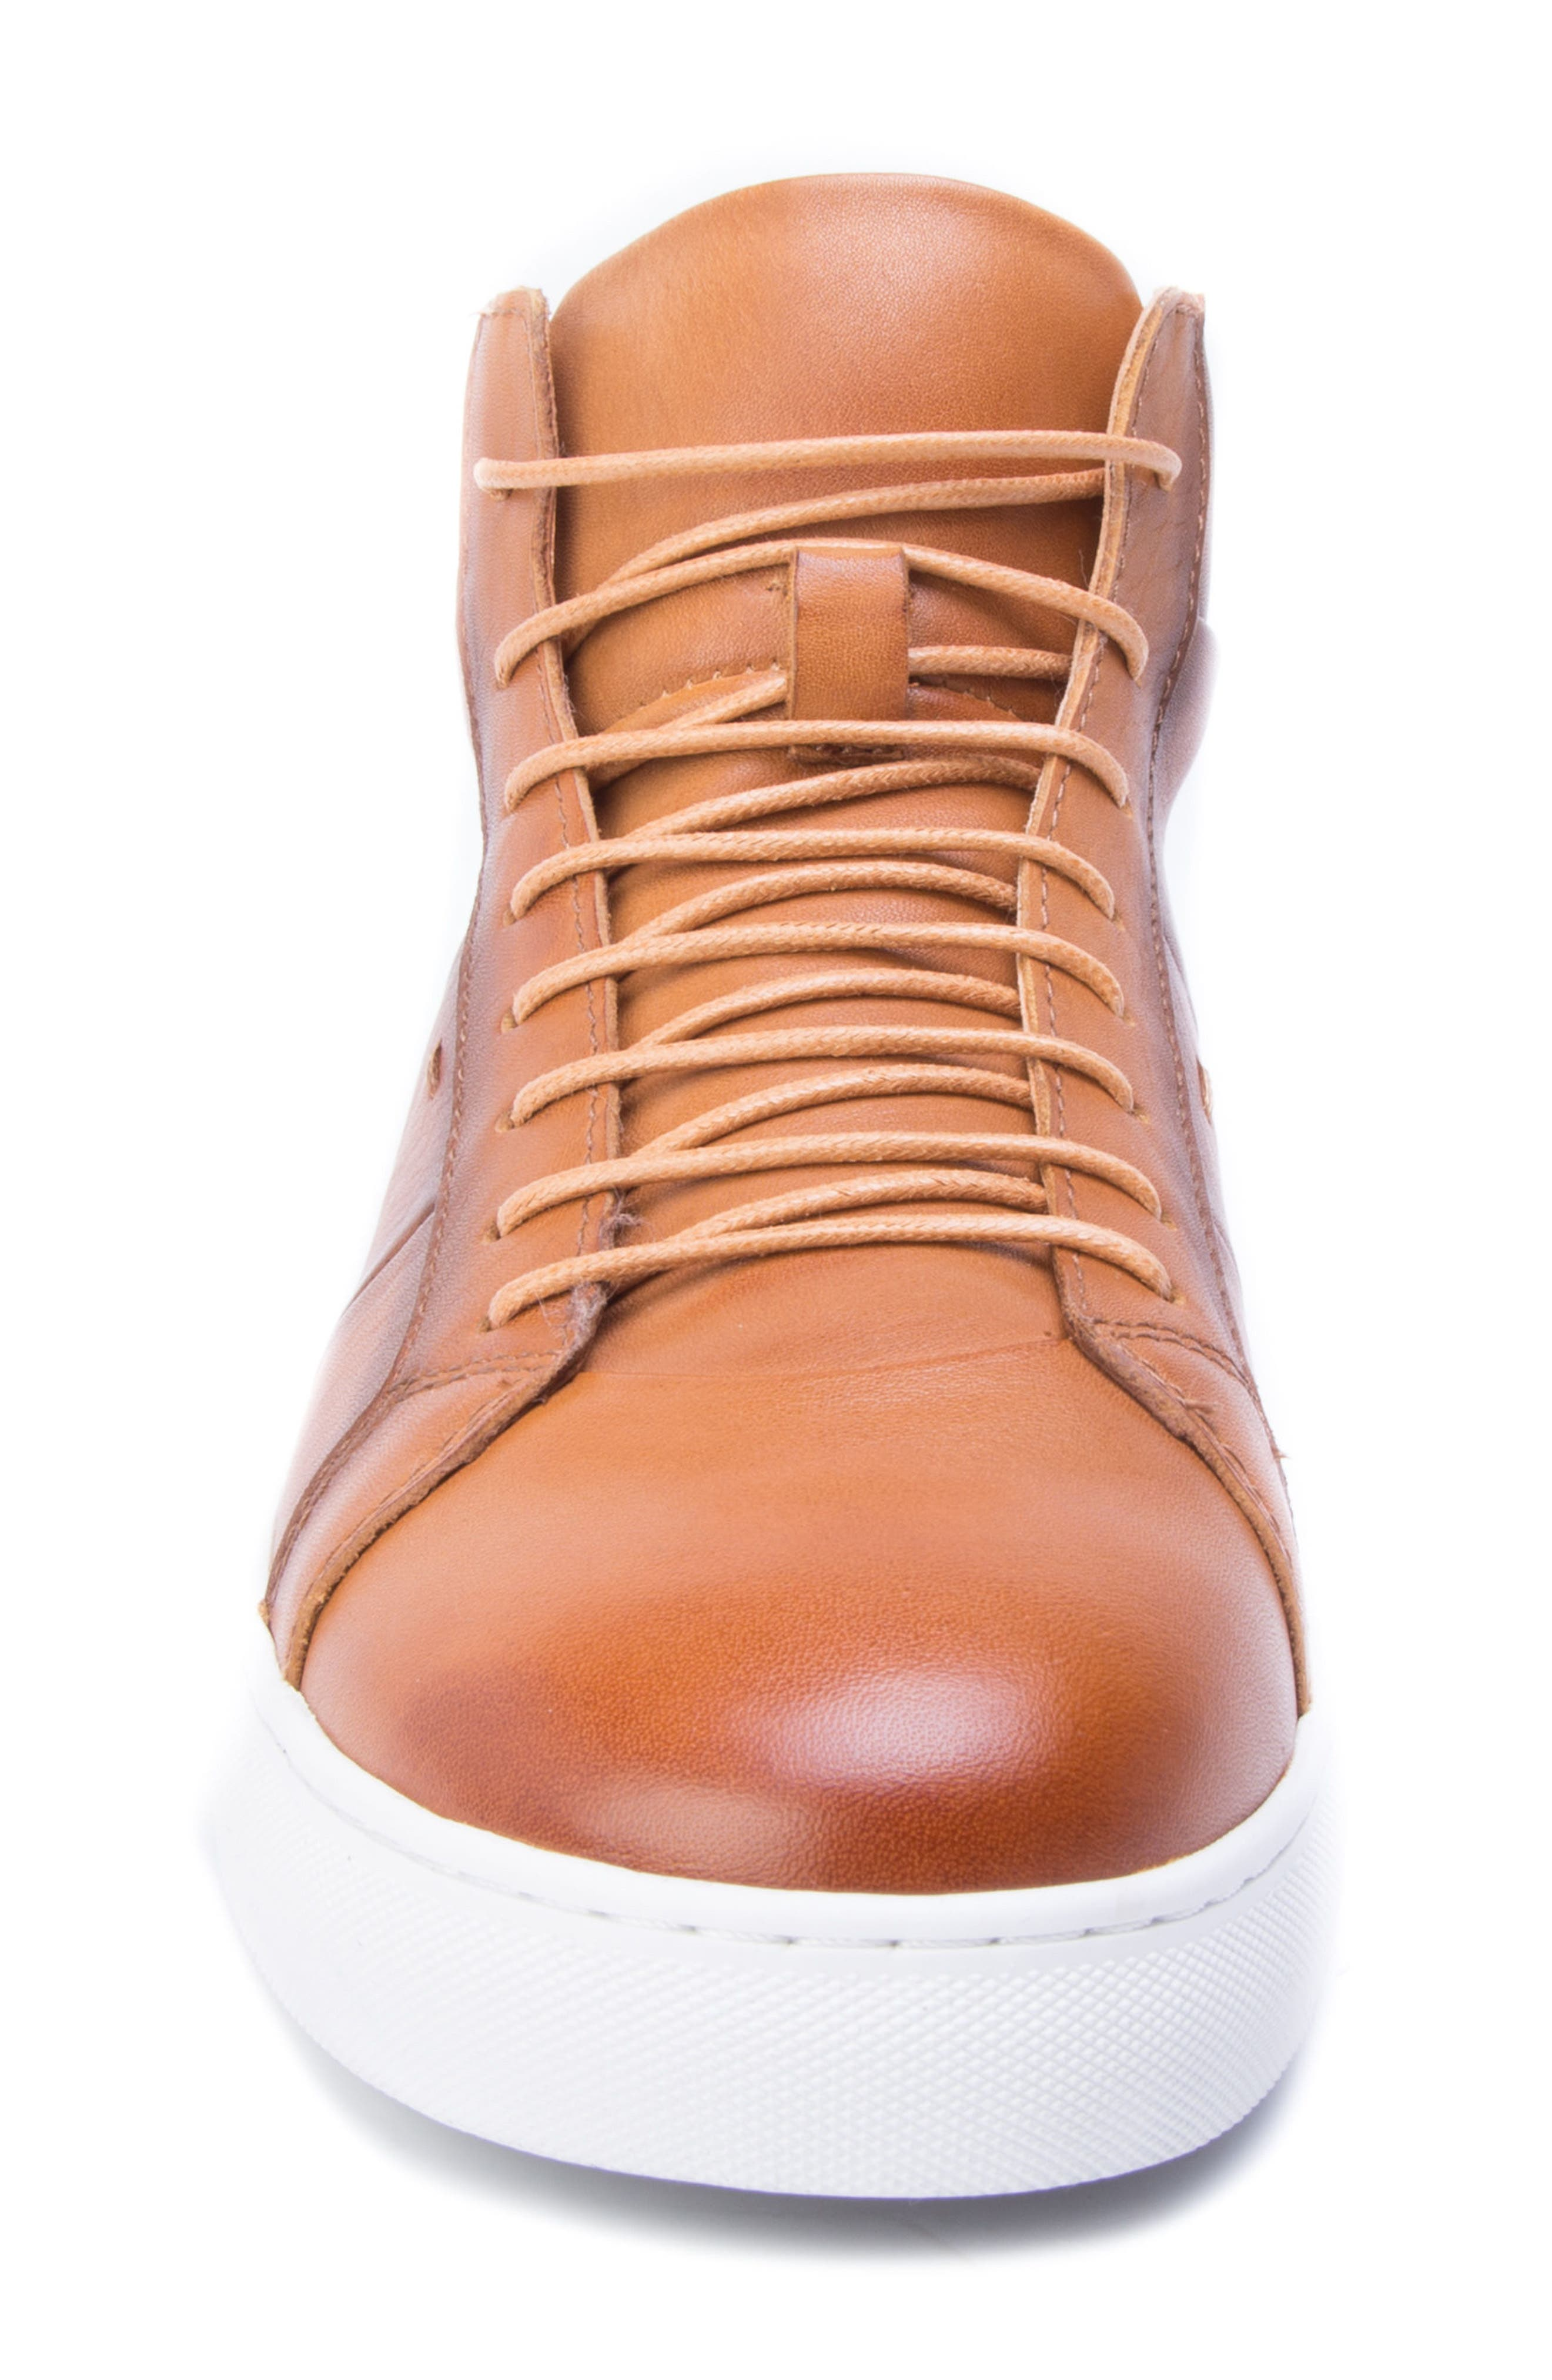 Phaser High Top Sneaker,                             Alternate thumbnail 4, color,                             Cognac Leather